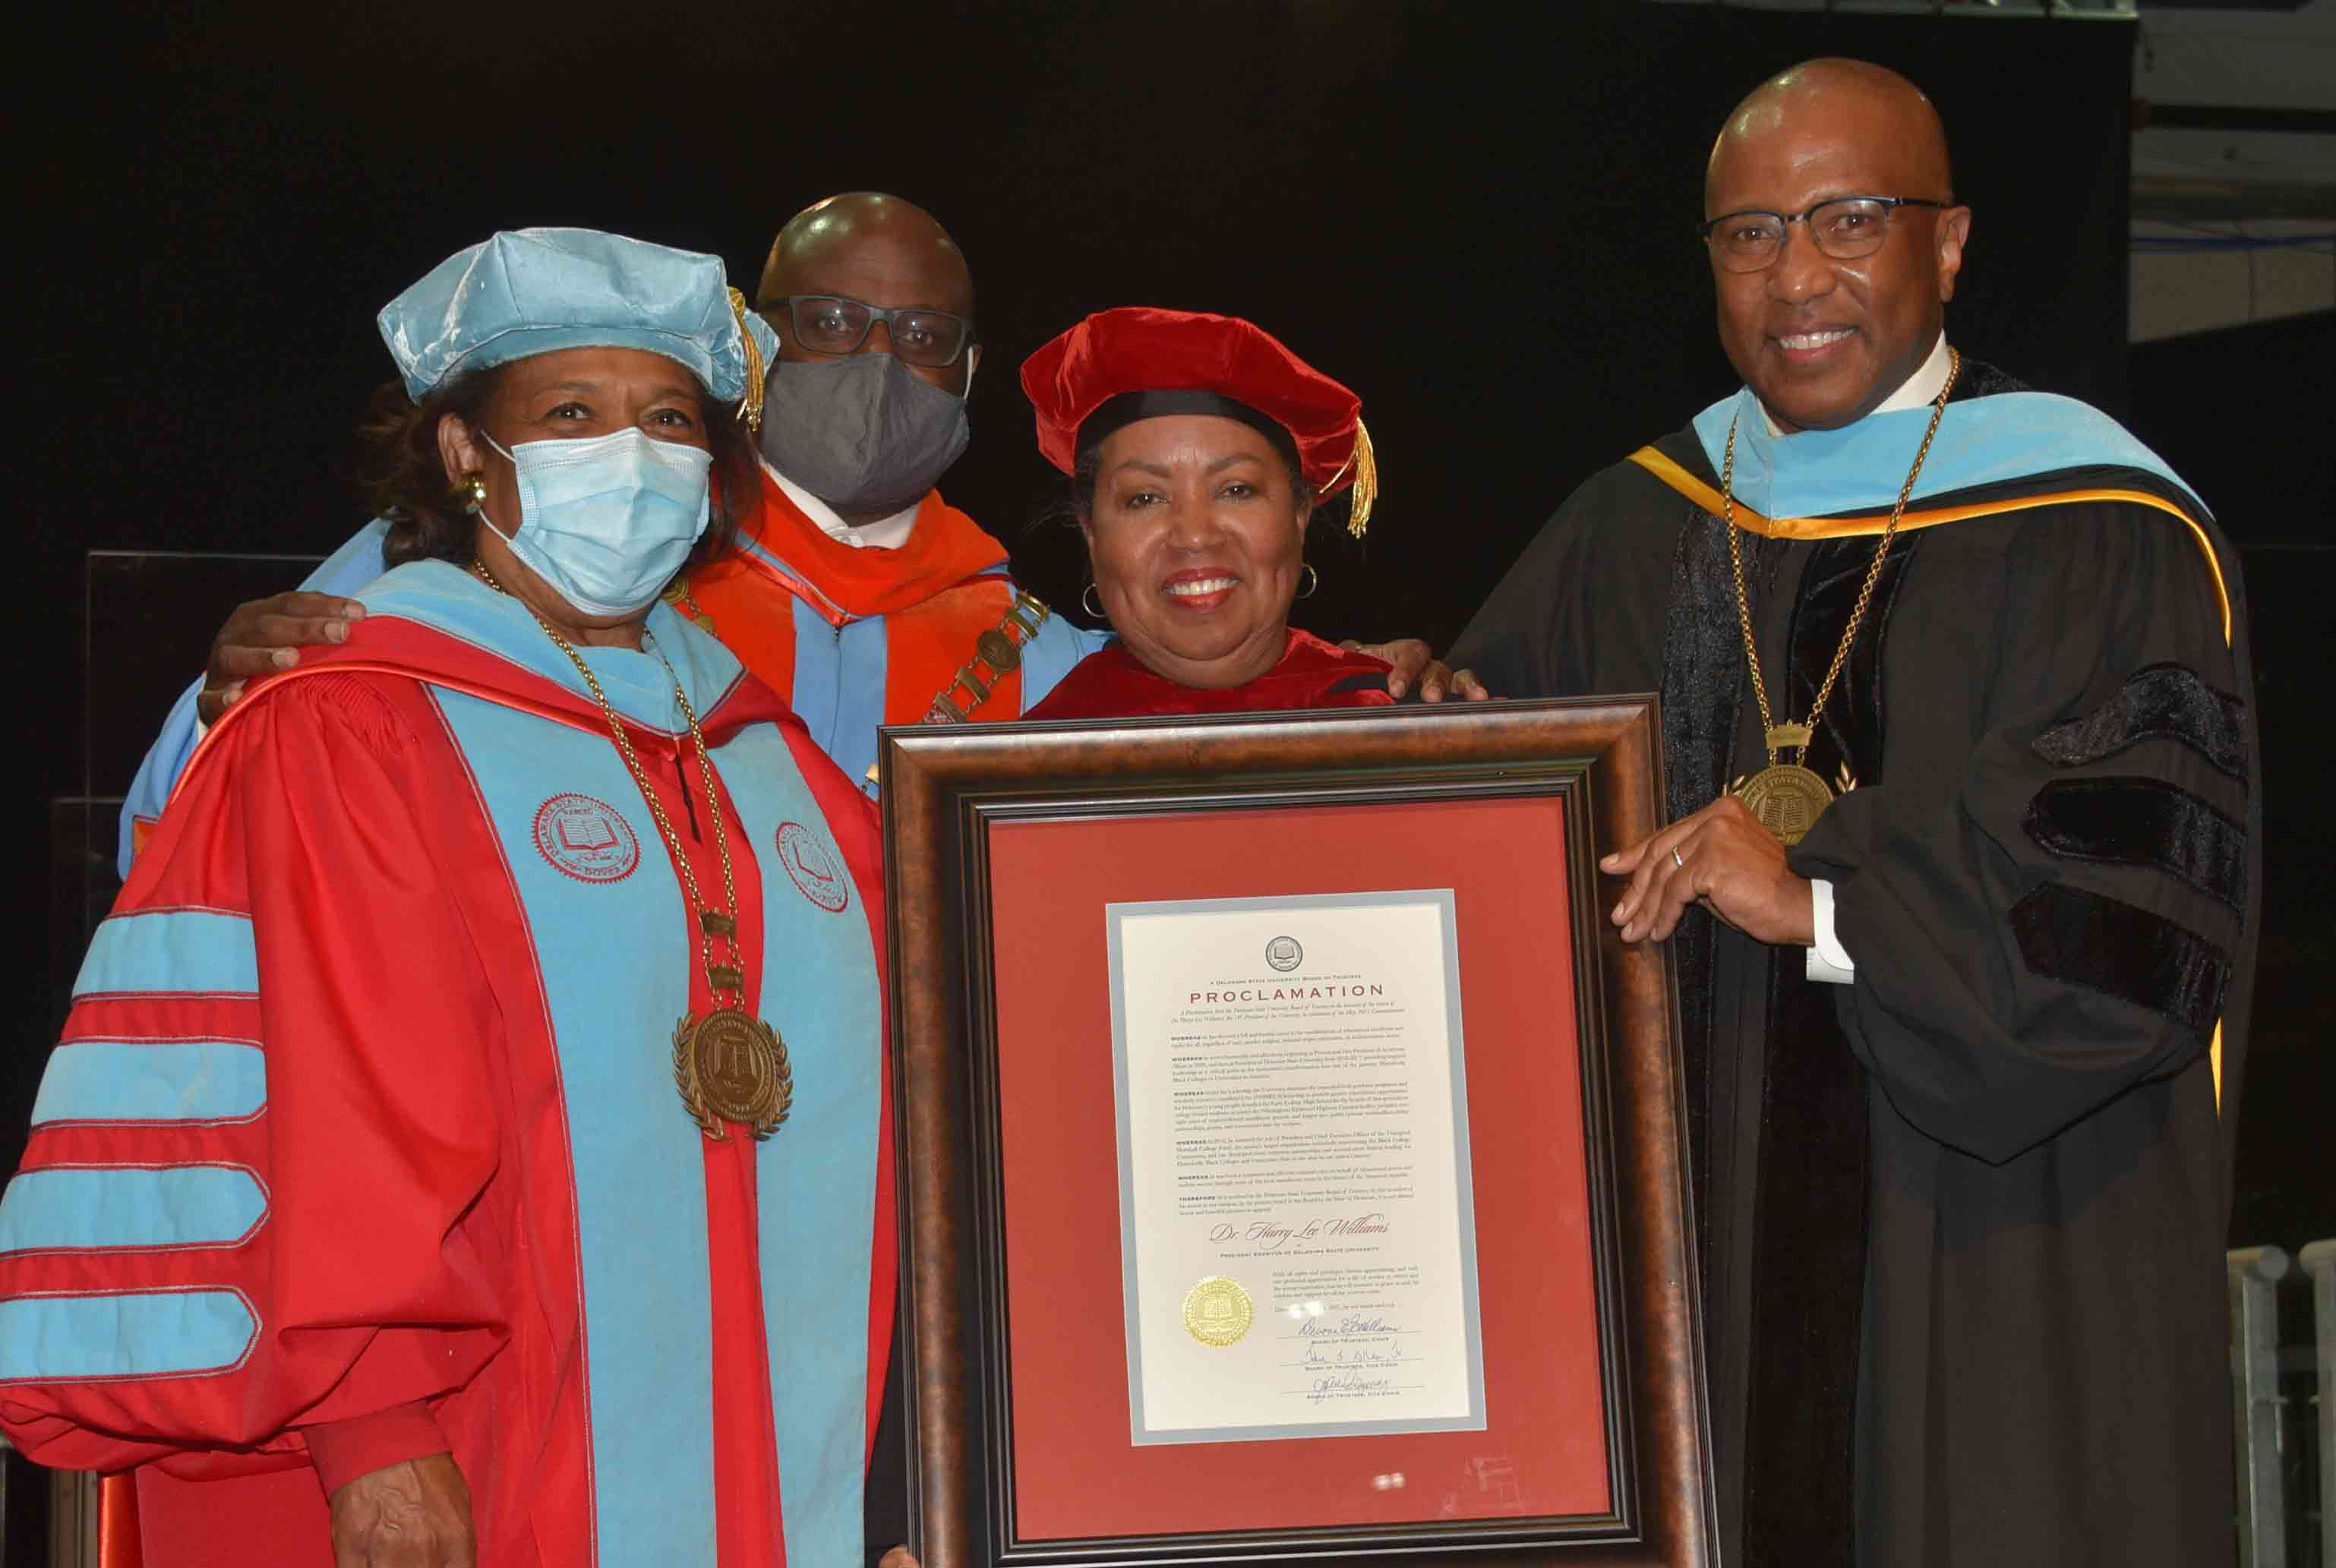 Dr. Harry L. Williams (r), the 10th president of Del State, was awarded President Emeritus status during the undergraduate Commencement ceremonies on May 8. Standing with him are Dr. Wilma Mishoe, Dr. Tony Allen and Board Chair Dr. Devona Williams.